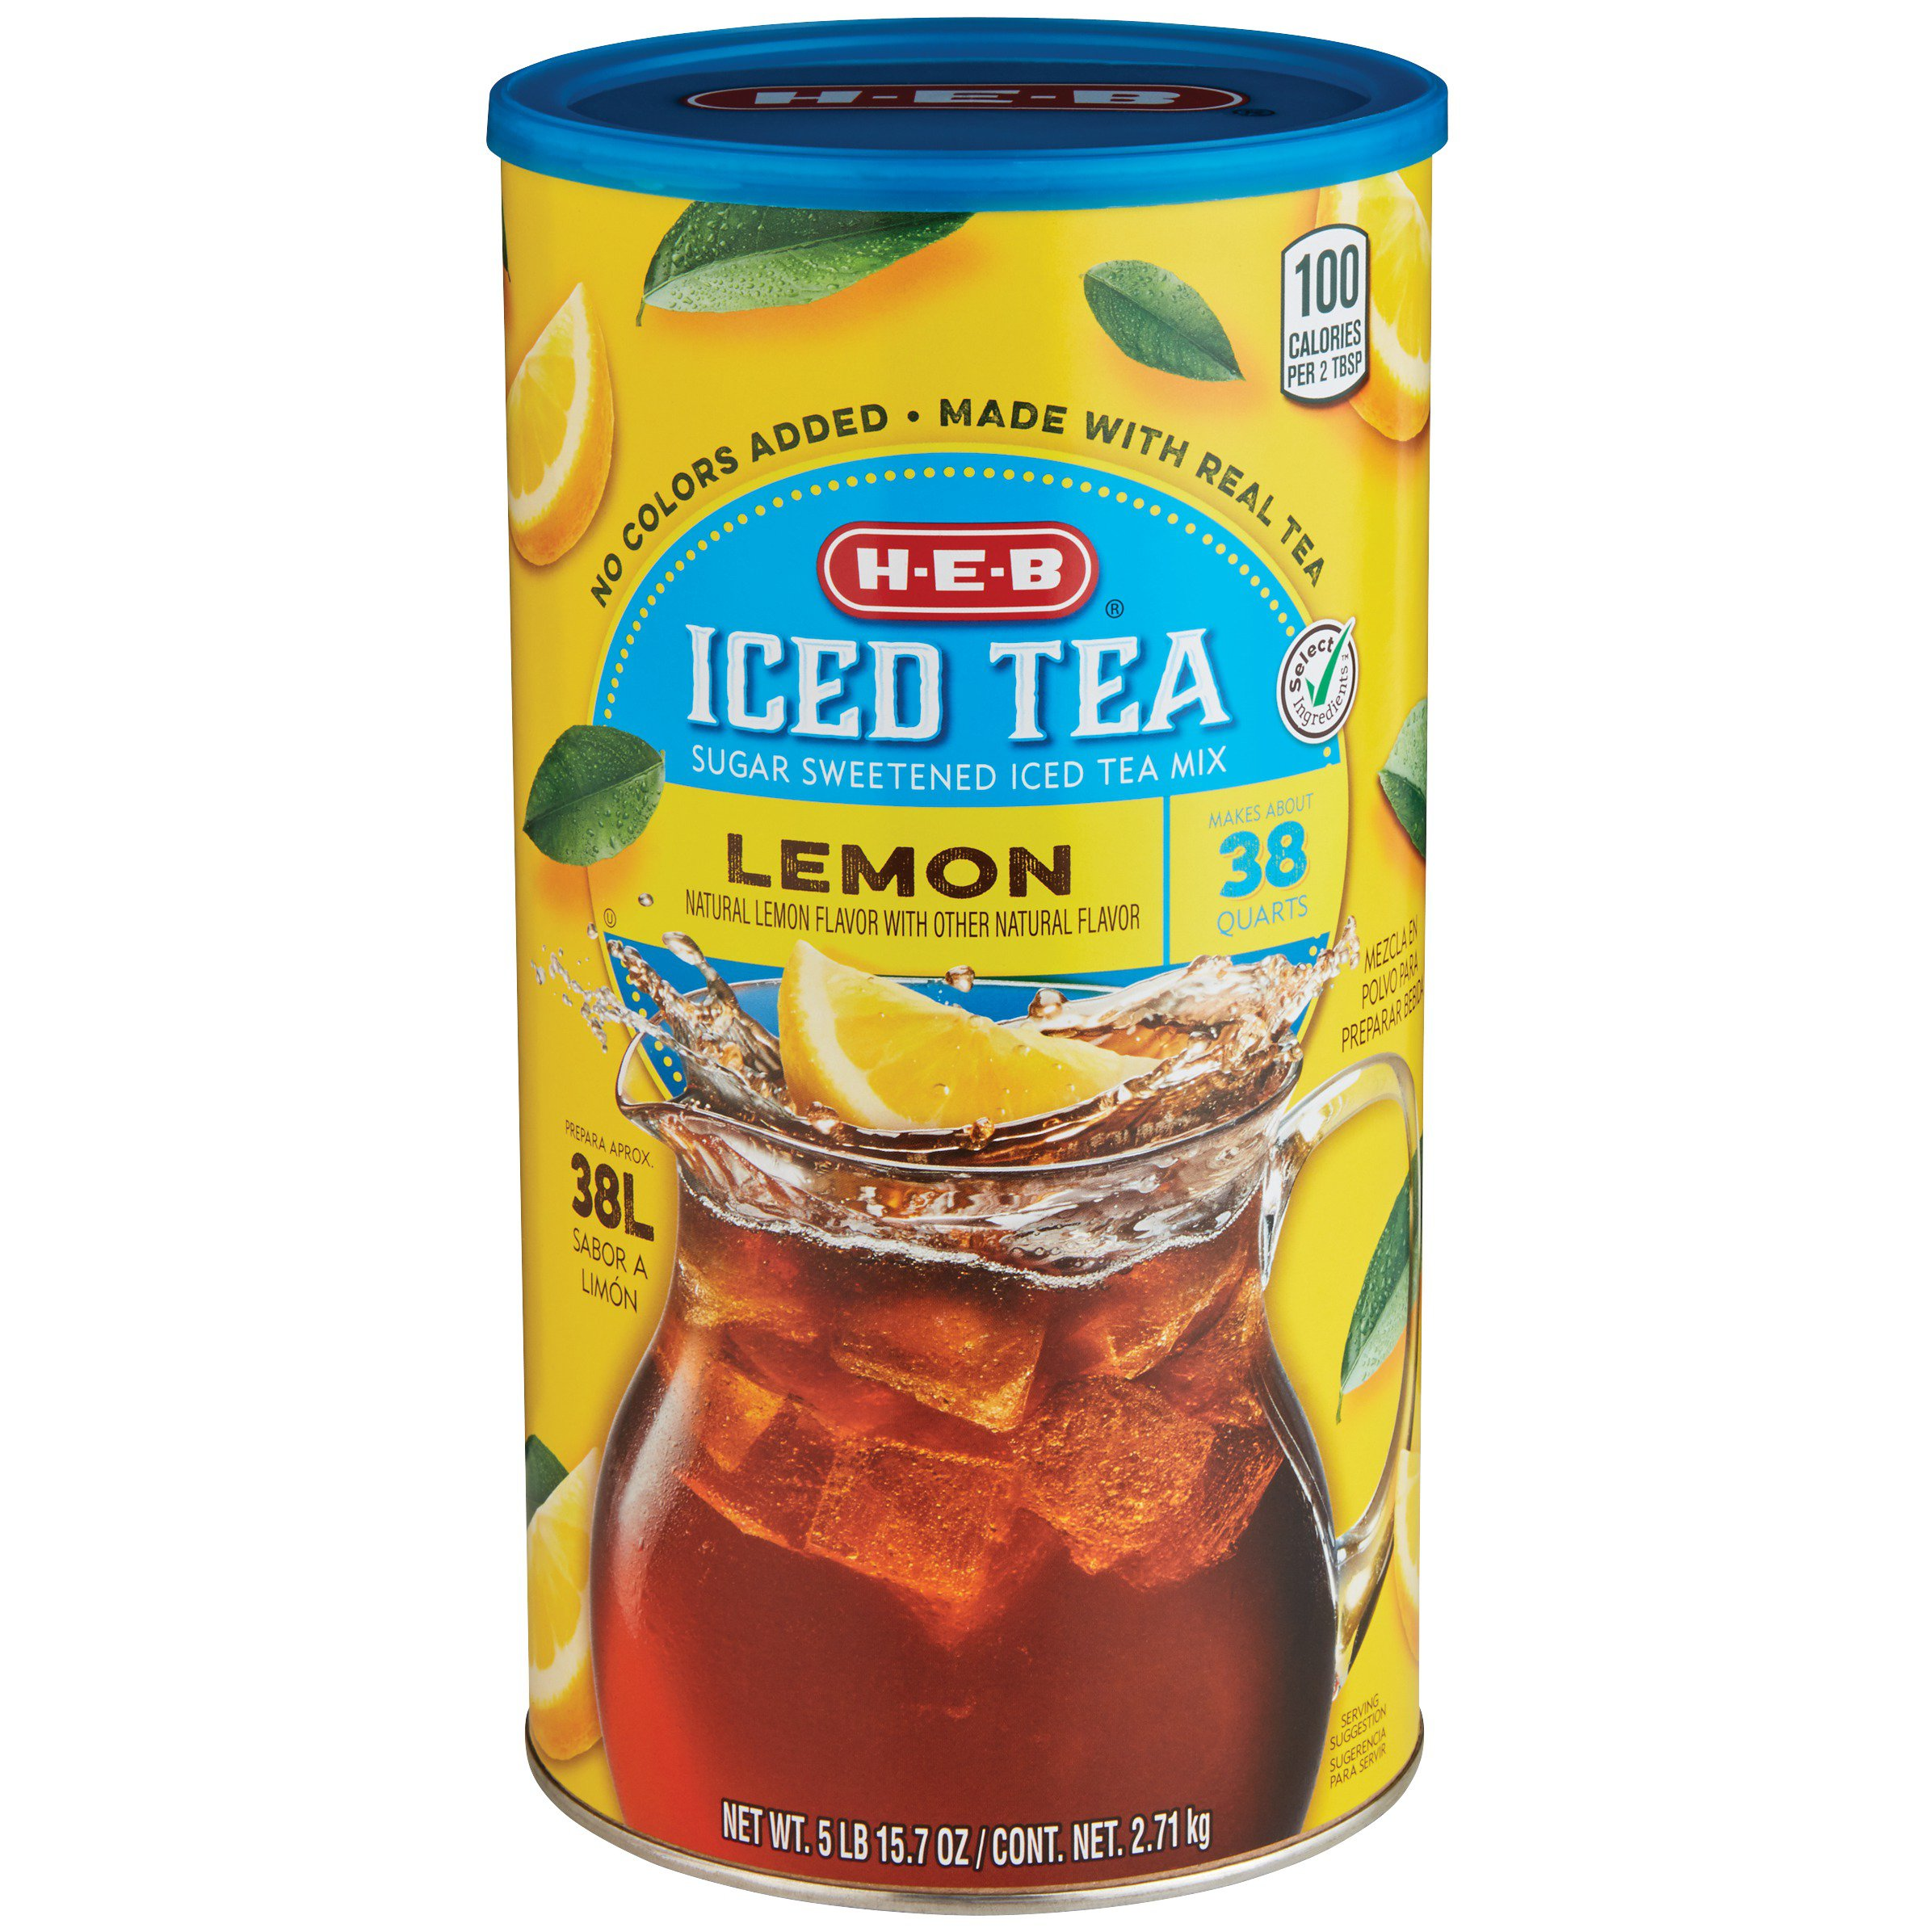 H E B Select Ingredients Lemon Sugar Sweetened Iced Tea Mix Shop Tea At H E B